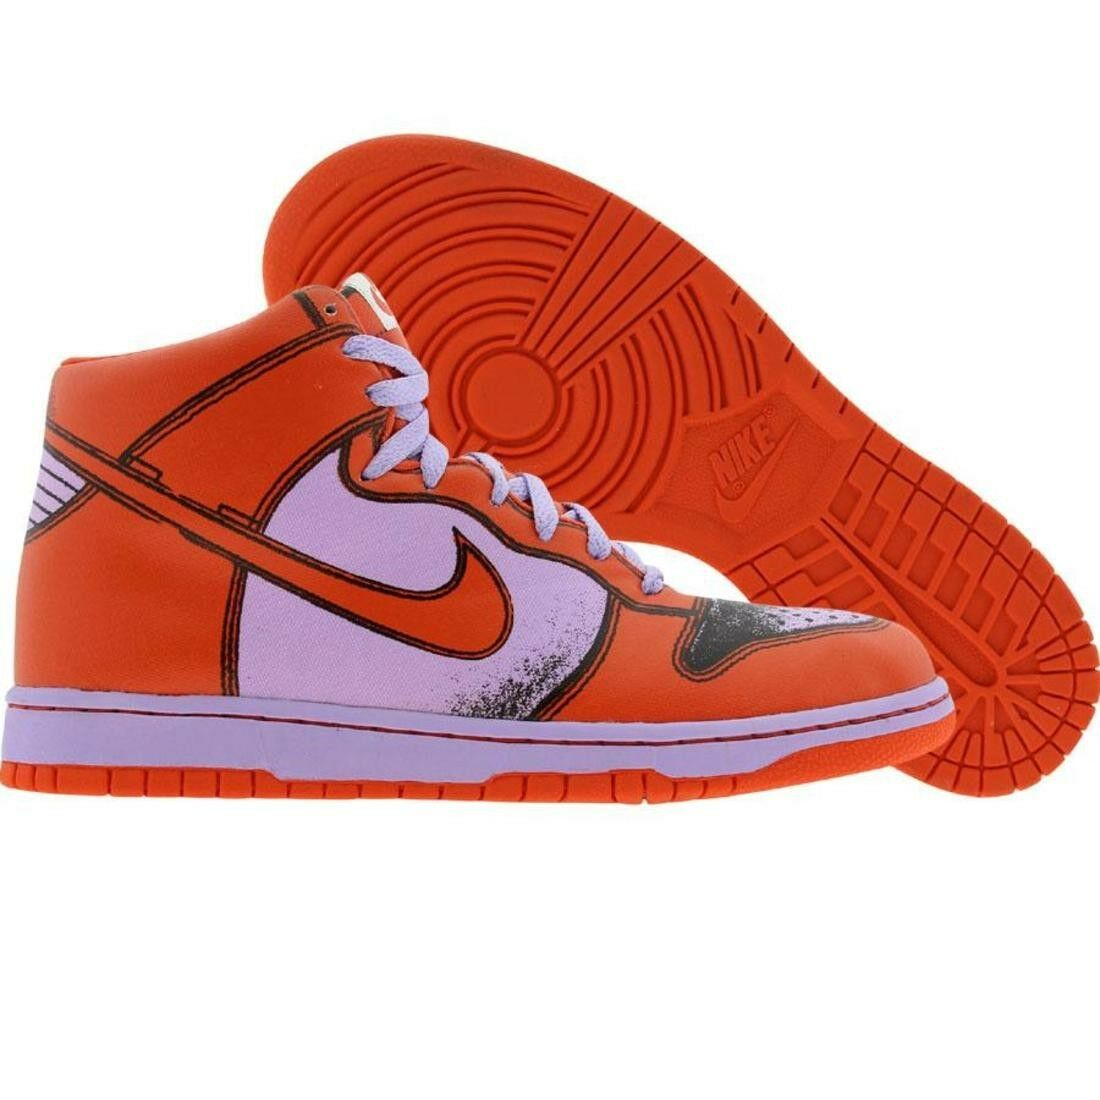 318998-581 Nike Dunk High 1 Piece premium violets Ice Deep Orange